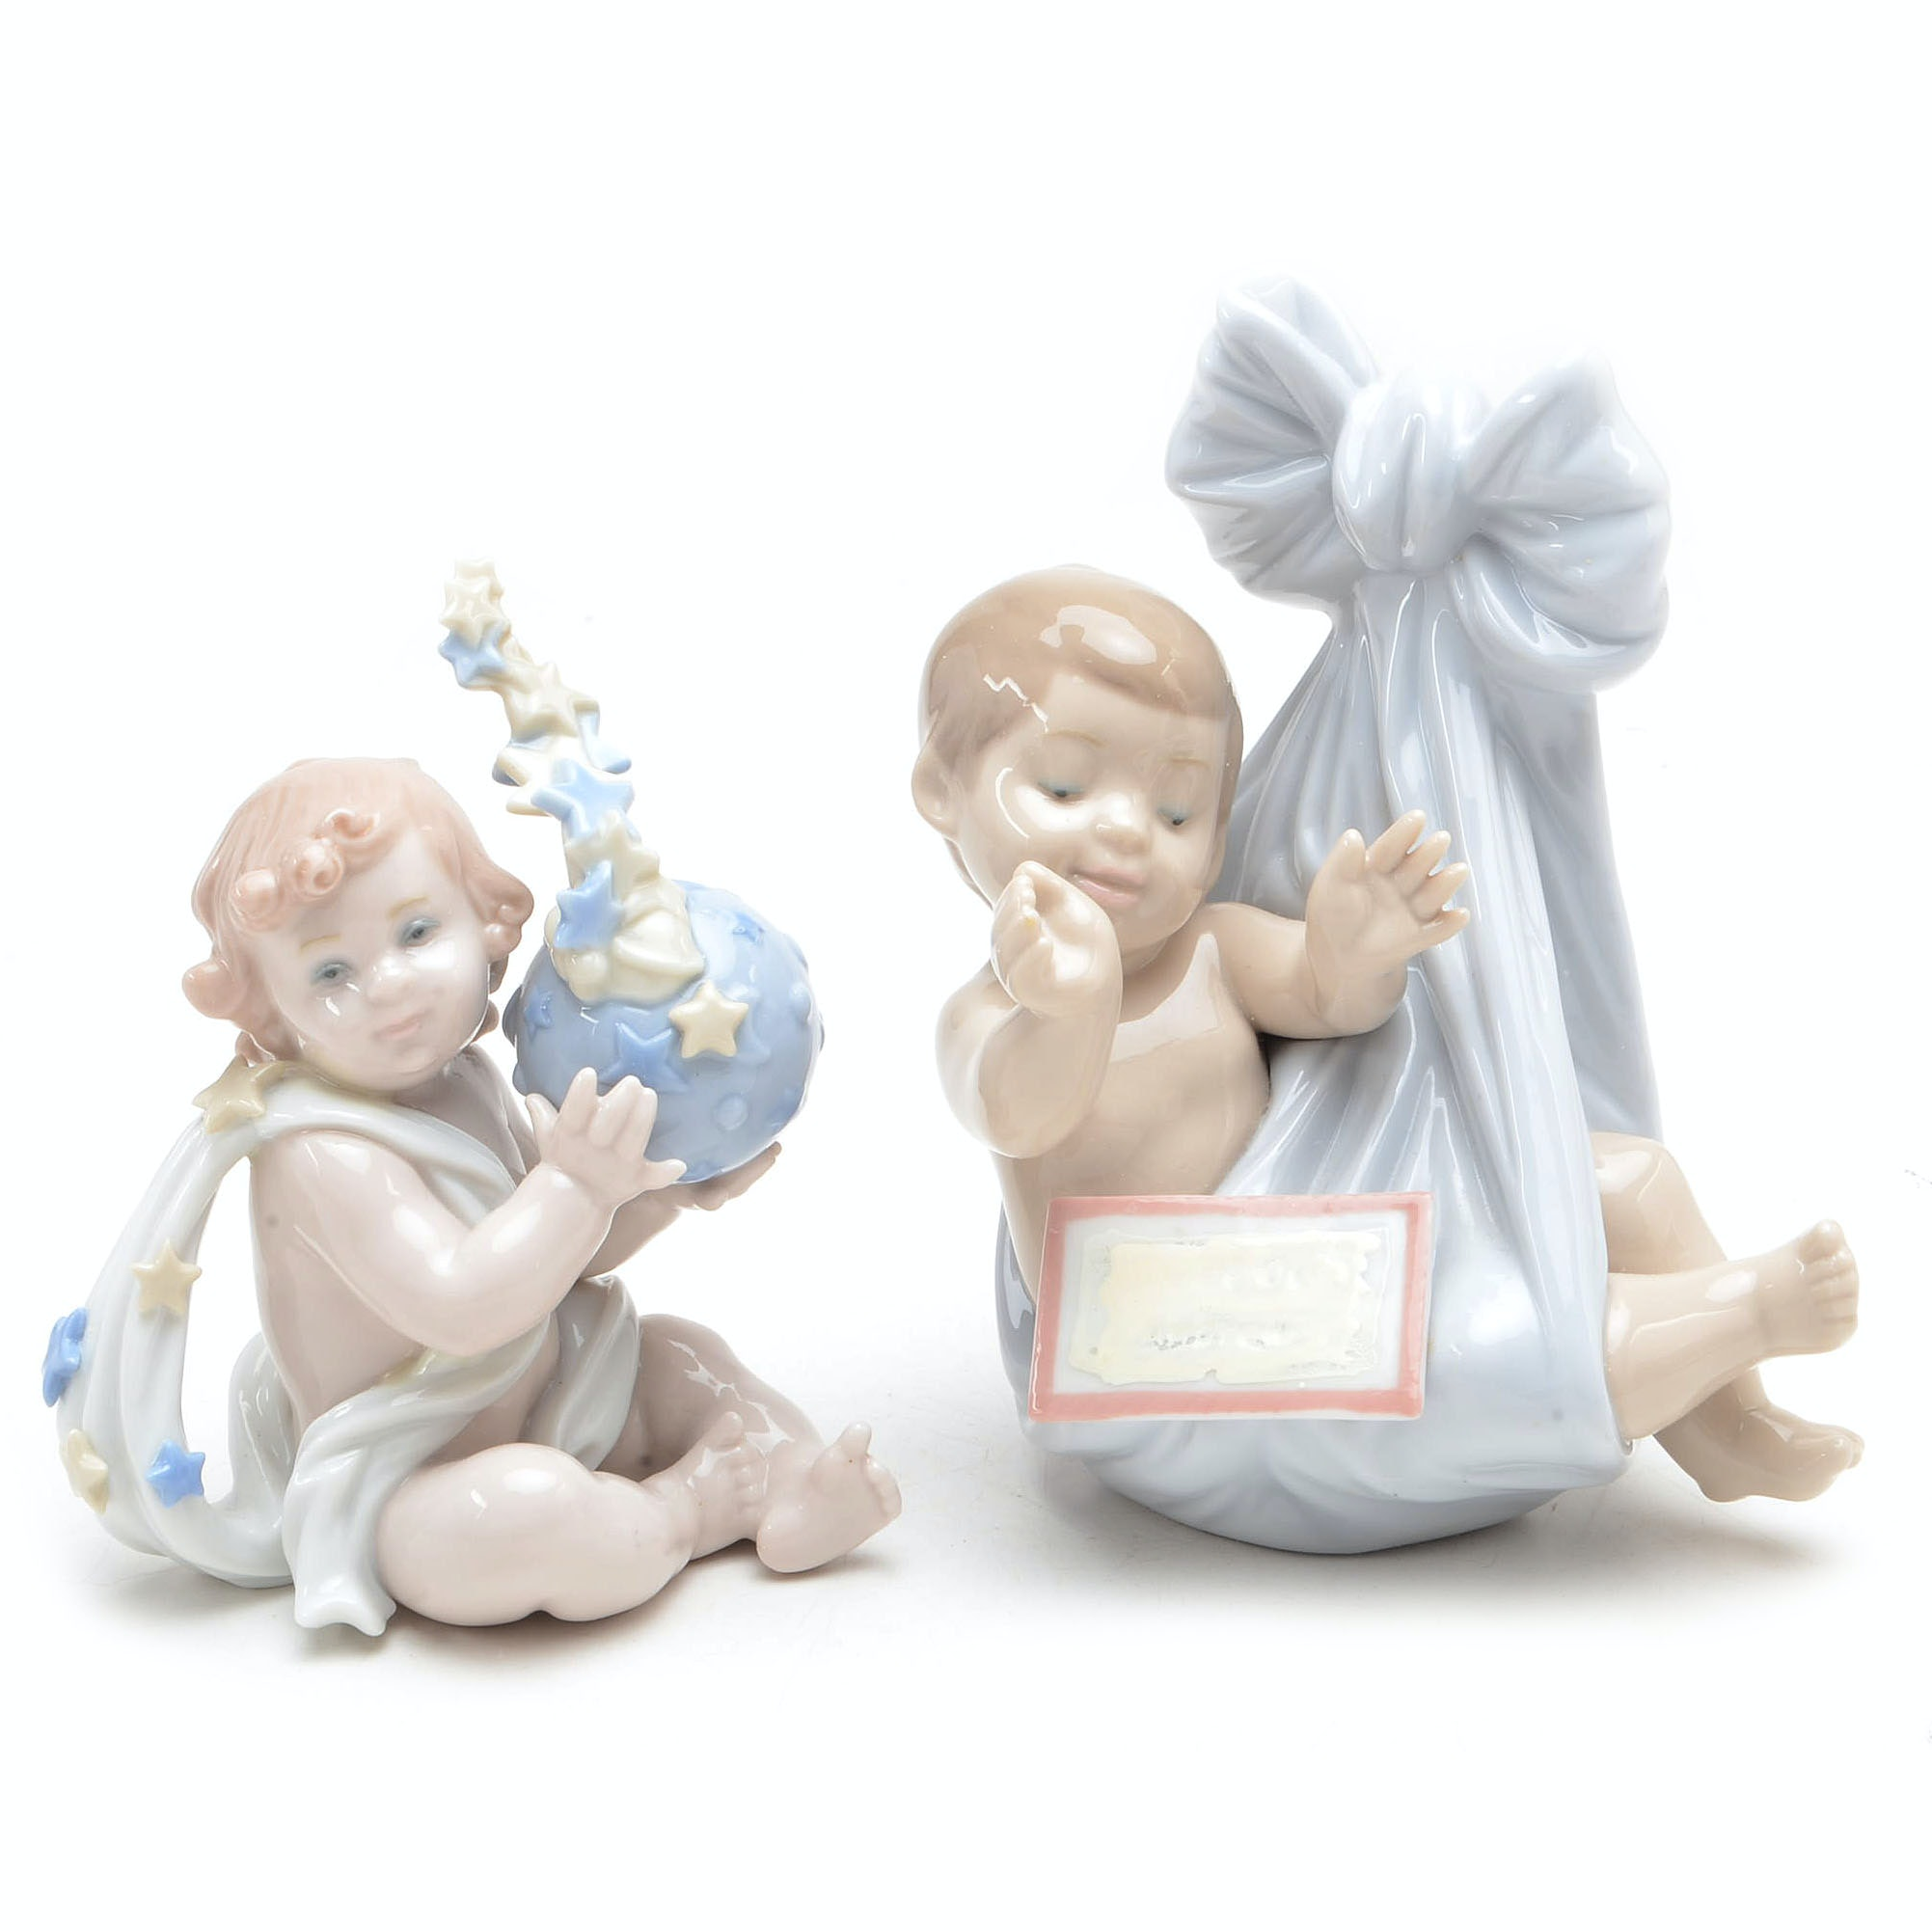 """Lladro Figures """"Heaven's Gift -Boy"""" and """"A New Beginning"""""""